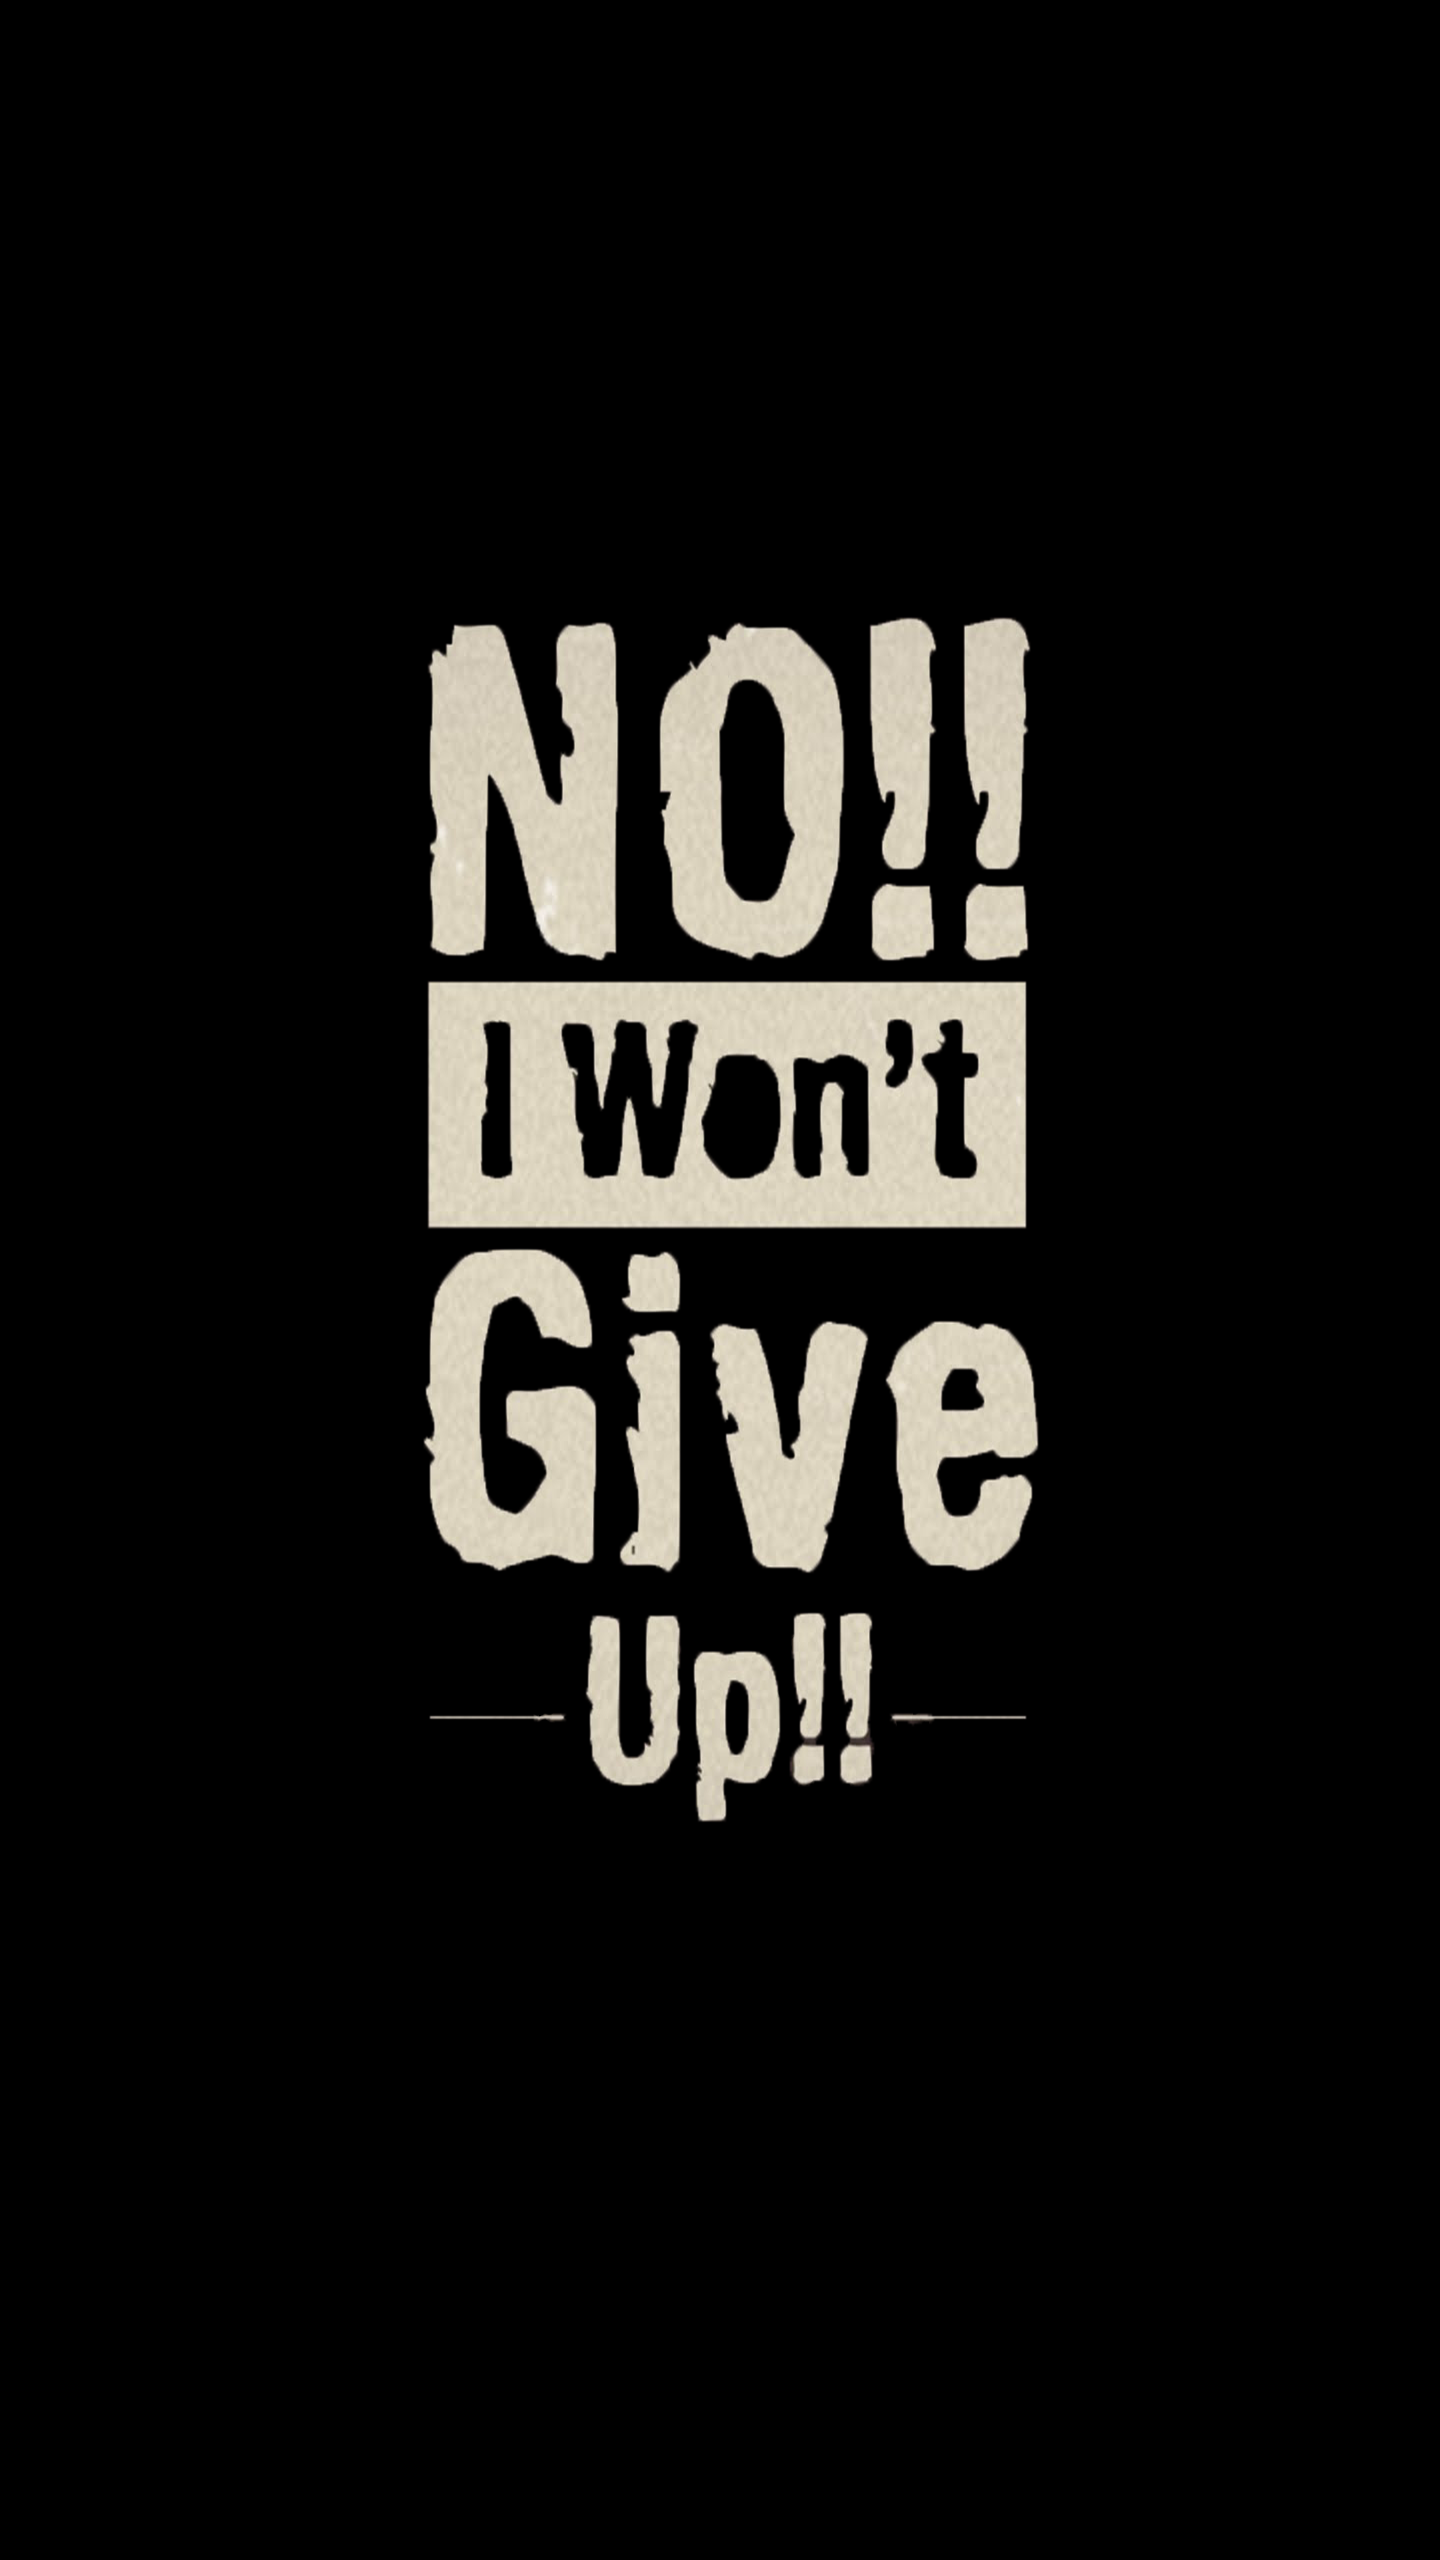 Give Up 1440x2560 I Redd It Submitted By Prabjots07 To R Amoledbackgrounds 1 Comments Original Inspiring Quotes About Life Words Wallpaper Swag Quotes